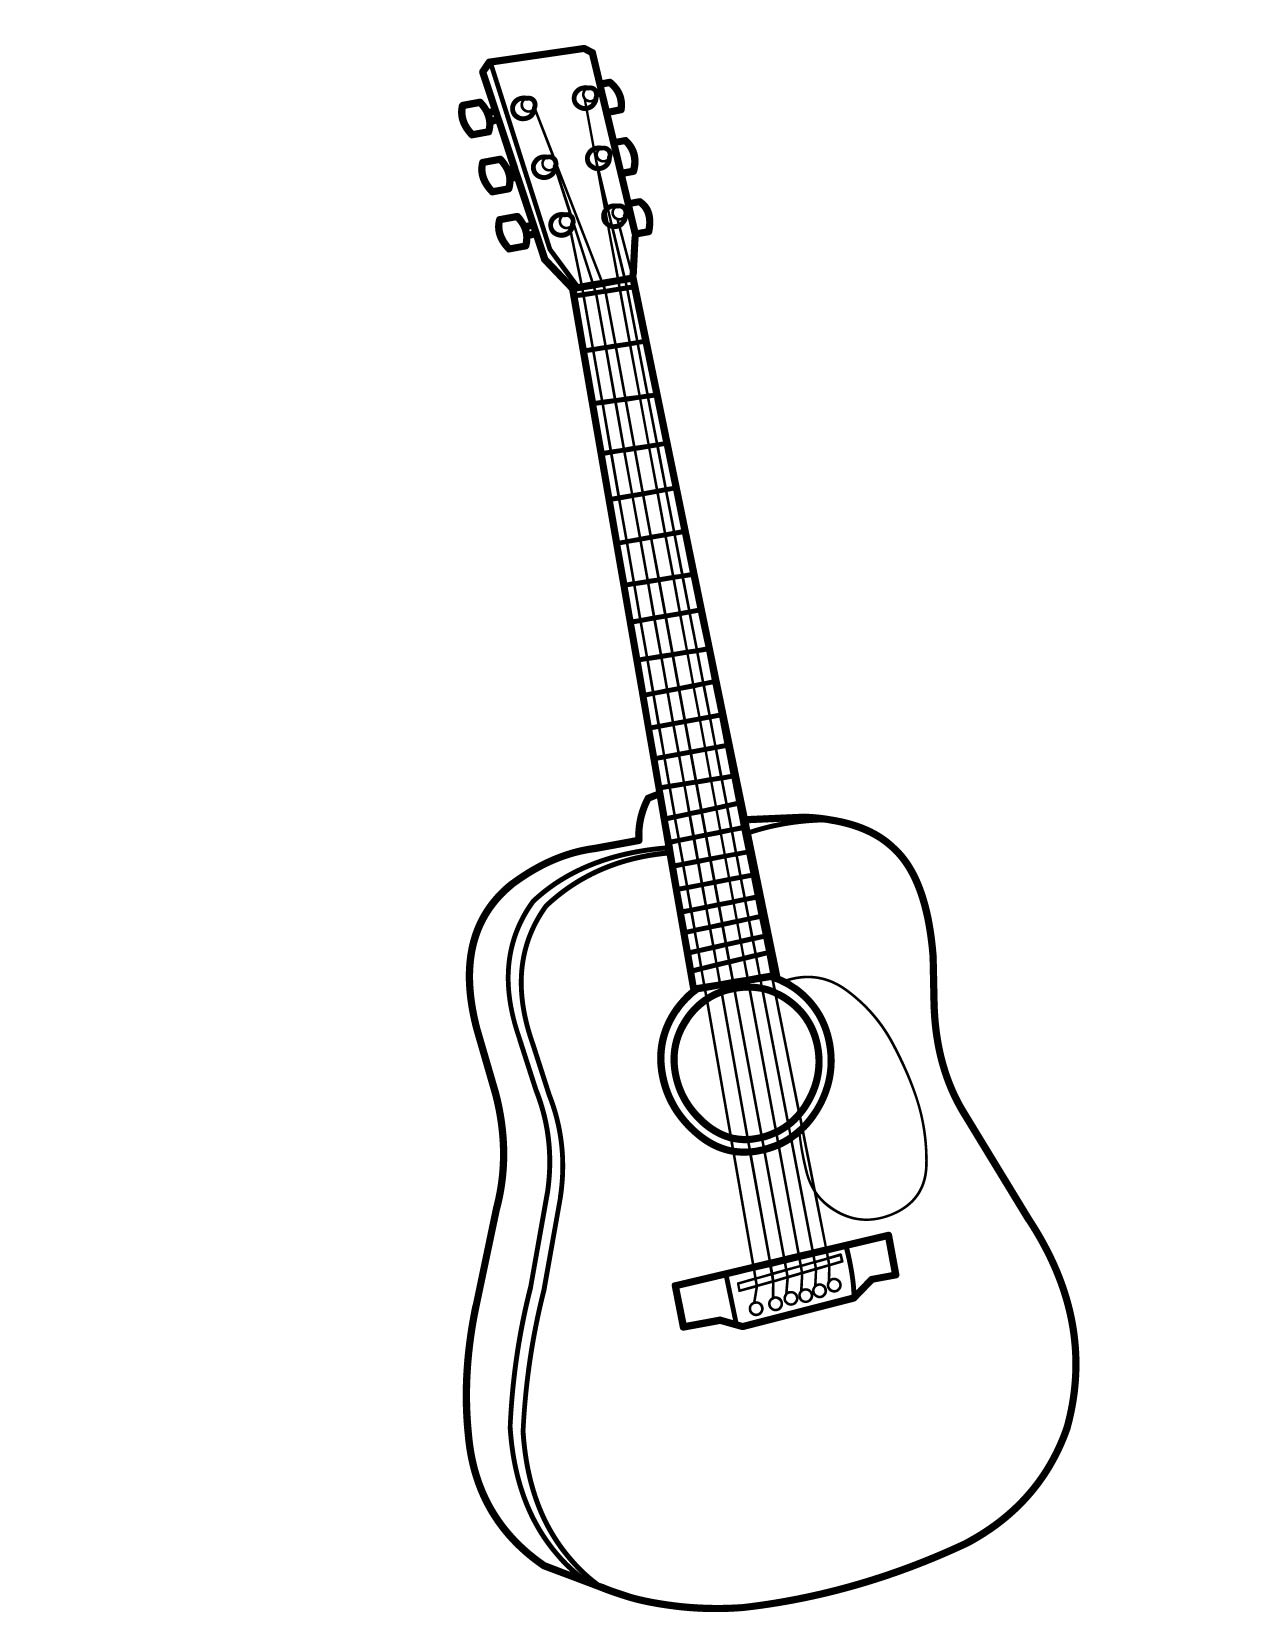 Musical instruments coloring pages🌑more pins like this one at fosterginger pinterest 🌑no pin limits🌑でこのようなピ